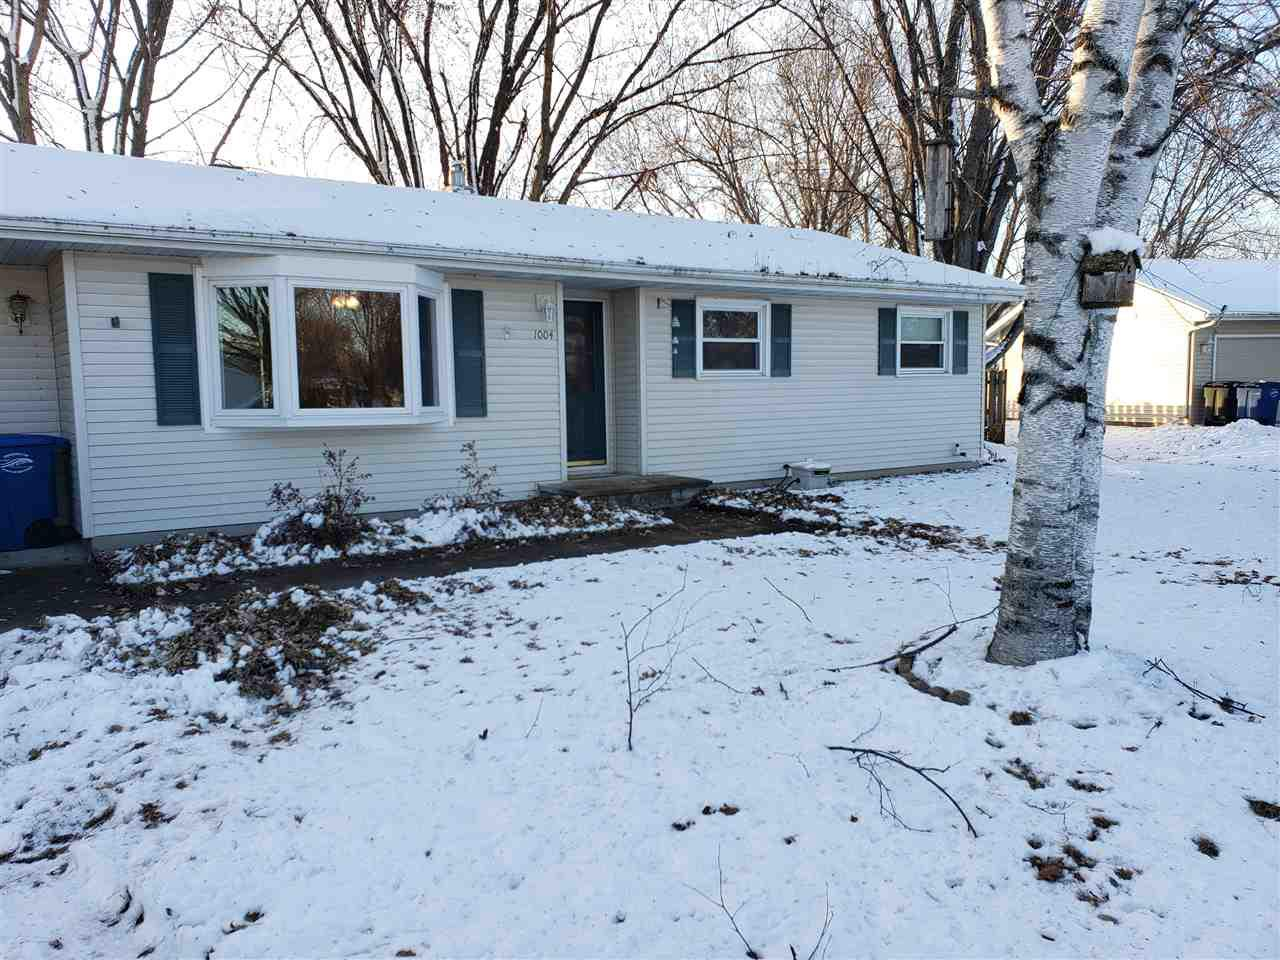 This Ranch home has 3 bedrooms and 2 full baths. Large corner lot with fenced-in backyard shade trees, 2 patio's, garden and fire pit. Being sold as-is. Make it yours! lots of potential awesome location in Fox Crossing.